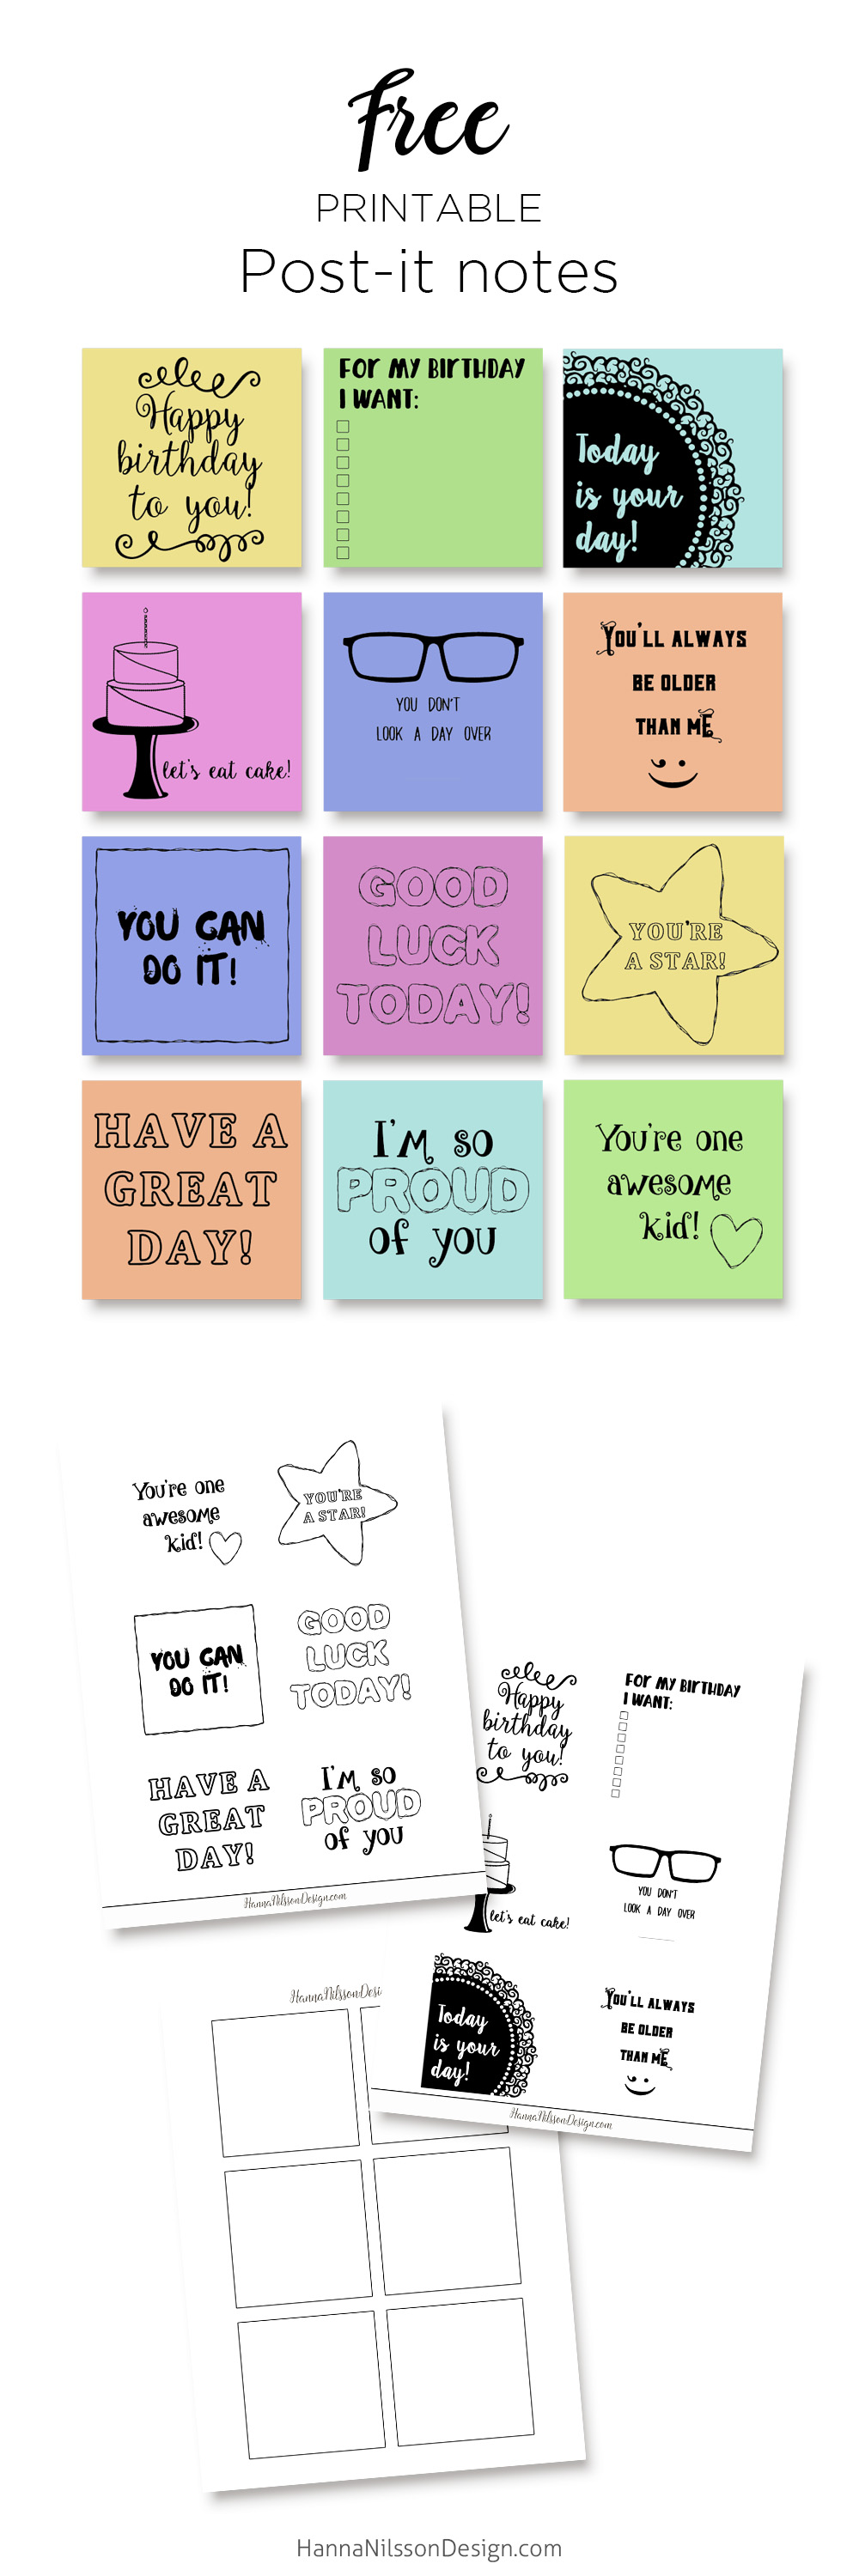 This is an image of Nifty Printable Post It Notes